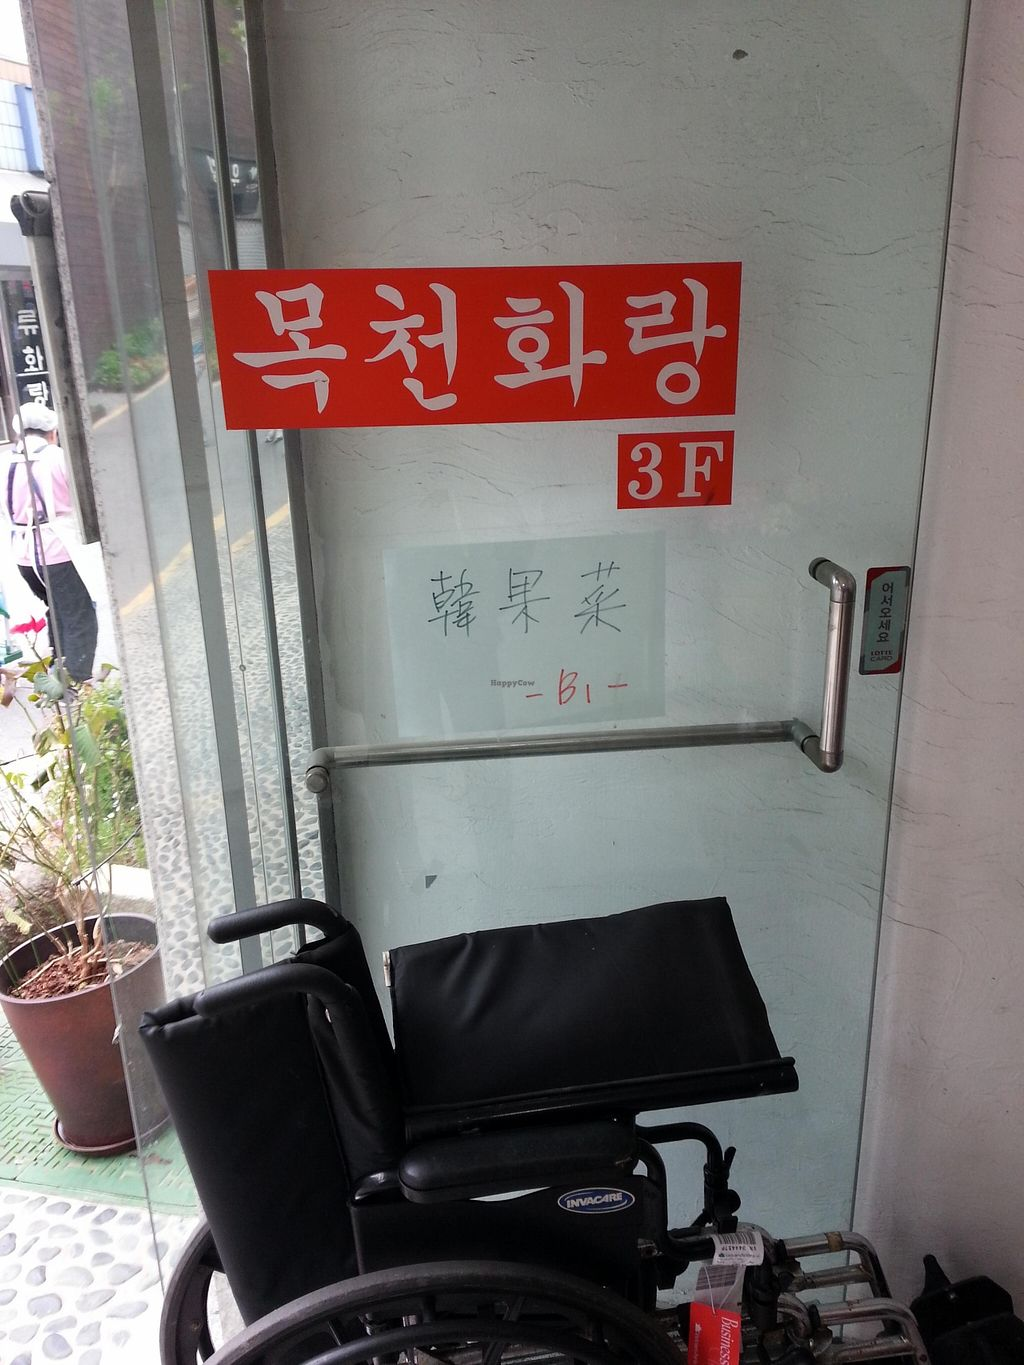 """Photo of Han Gwa Chae - 한과채  by <a href=""""/members/profile/inthesewords"""">inthesewords</a> <br/>The entrance <br/> May 9, 2016  - <a href='/contact/abuse/image/11982/148165'>Report</a>"""